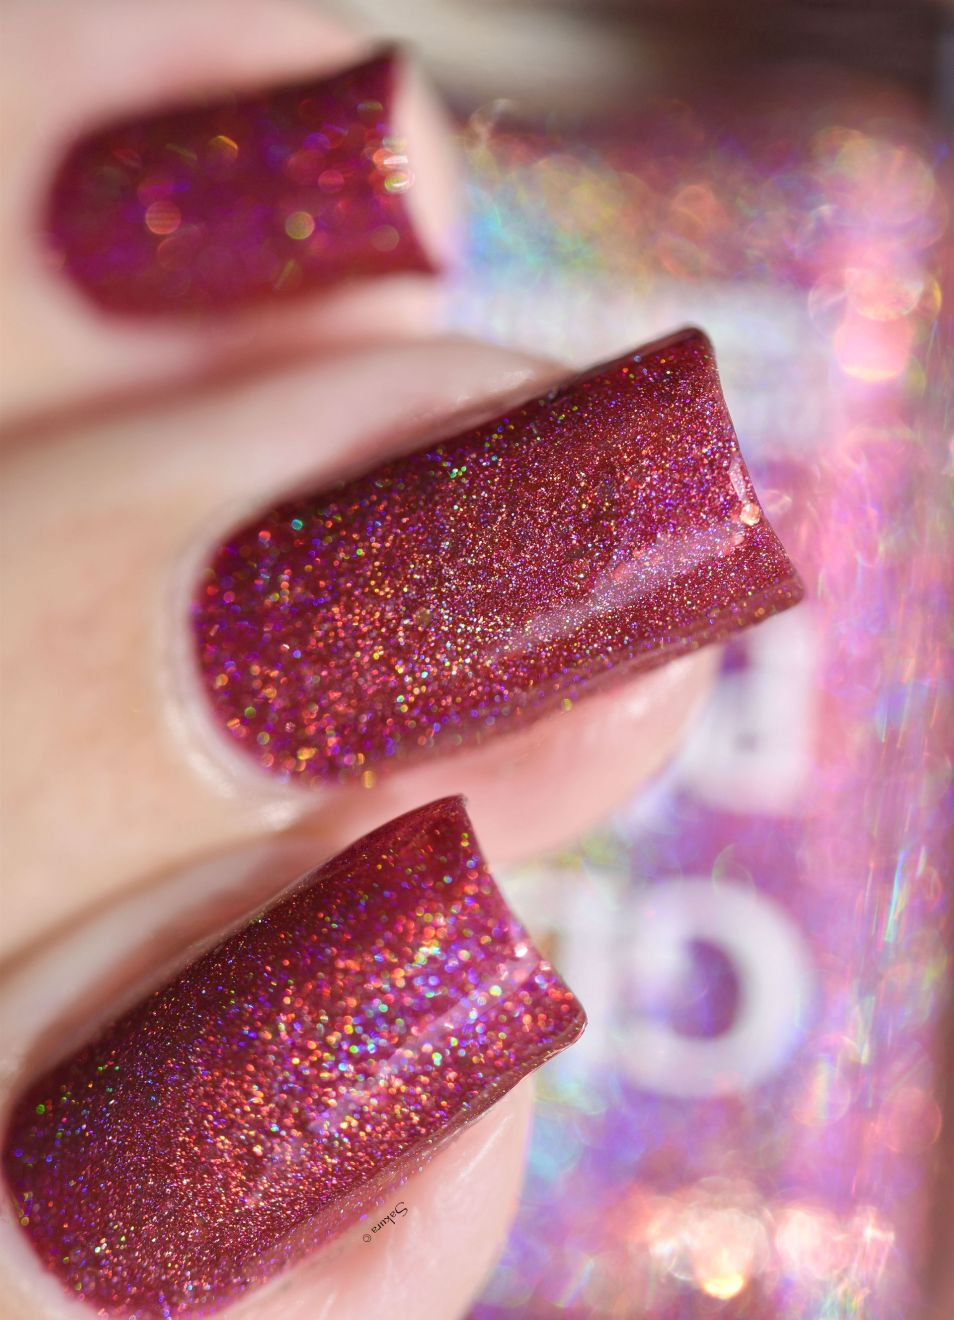 GLAMPOLISH ATTACK OF THE GLITTER 7